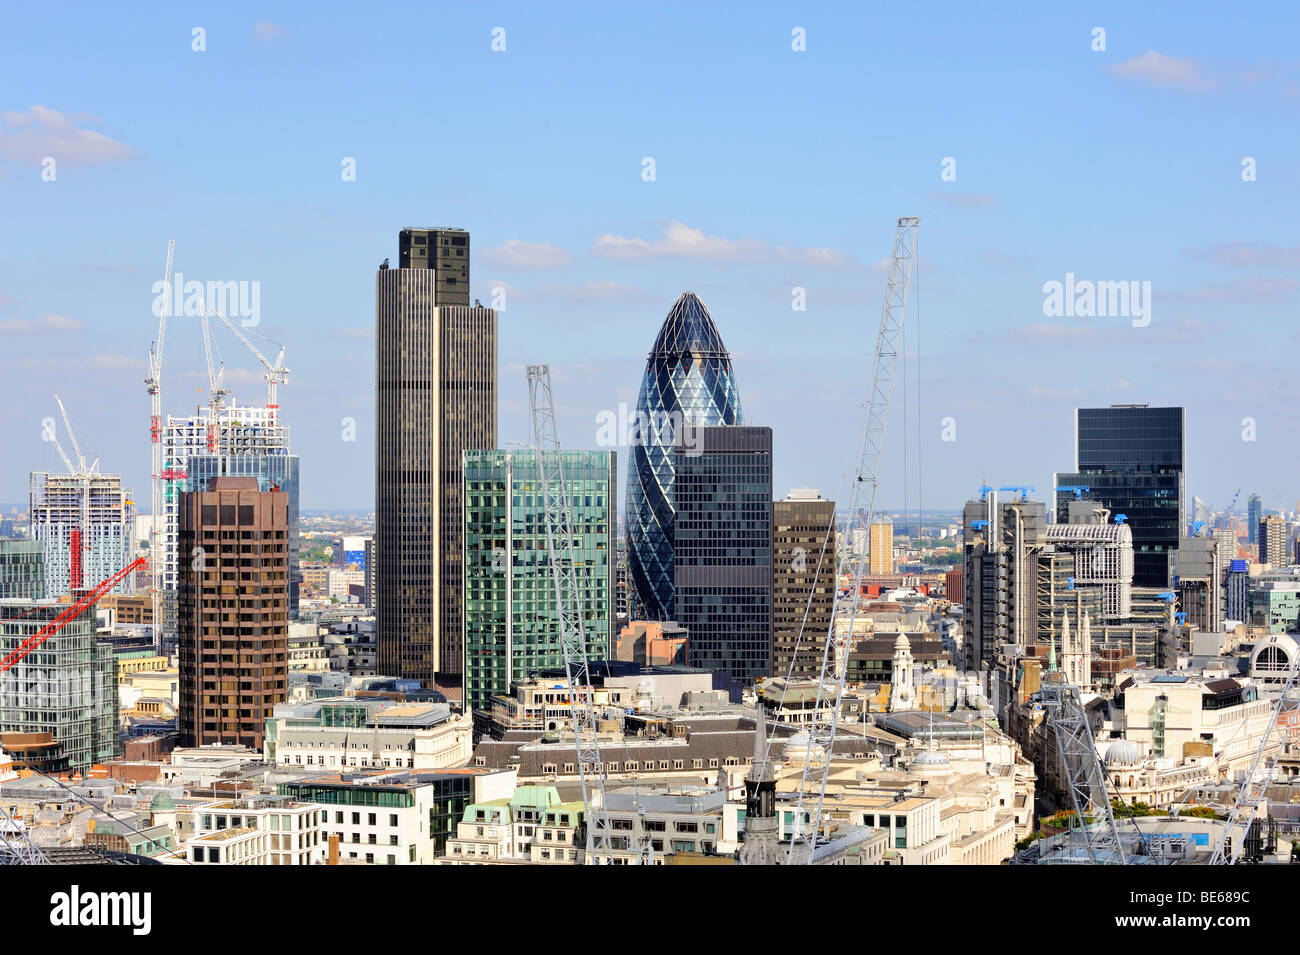 View over the city of London, construction cranes, England, United Kingdom, Europe - Stock Image